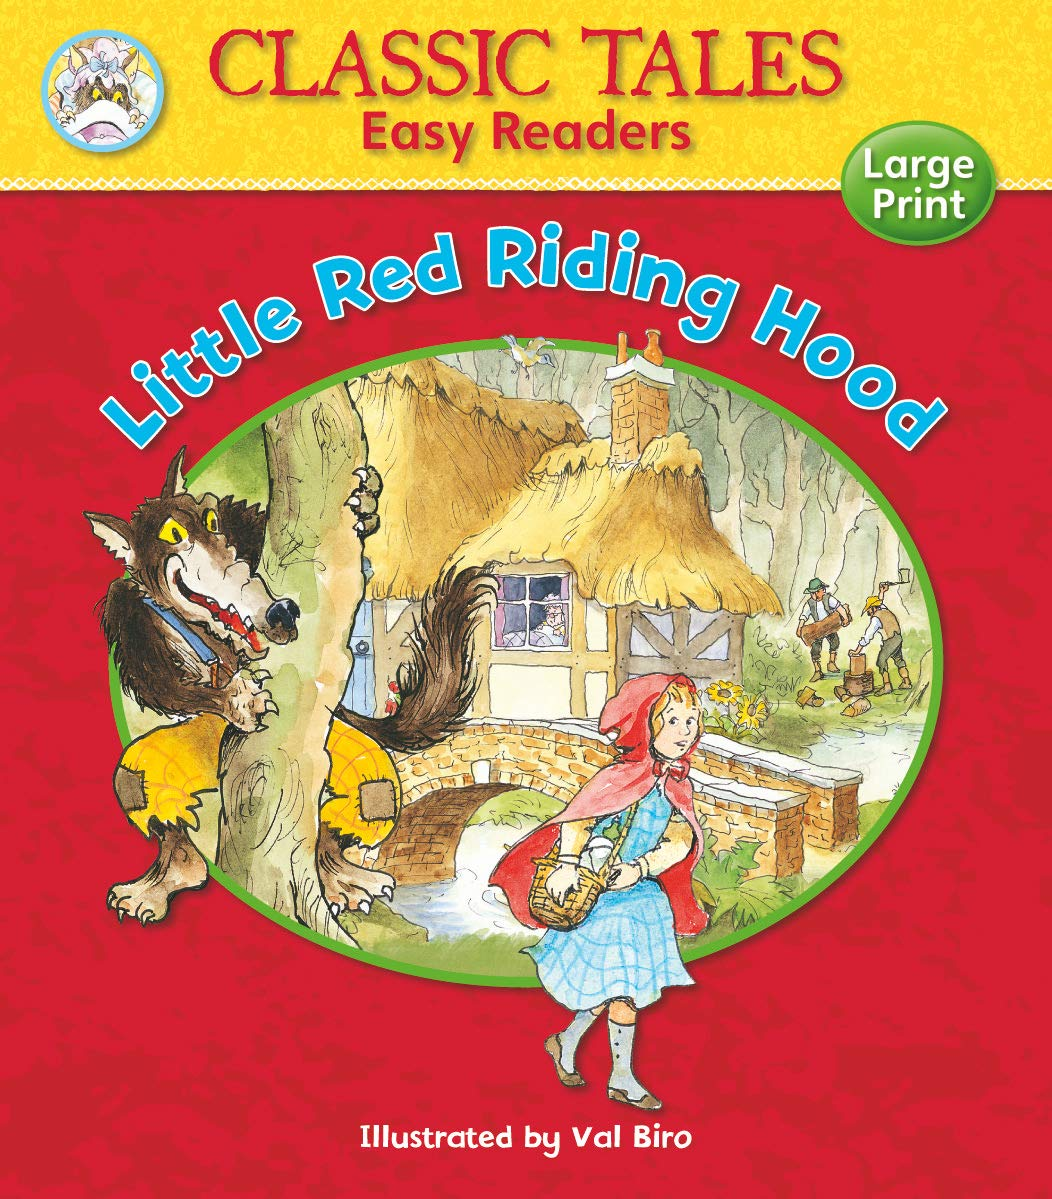 LITTLE RED RIDING HOOD (CLASSIC TALES EASY READERS)